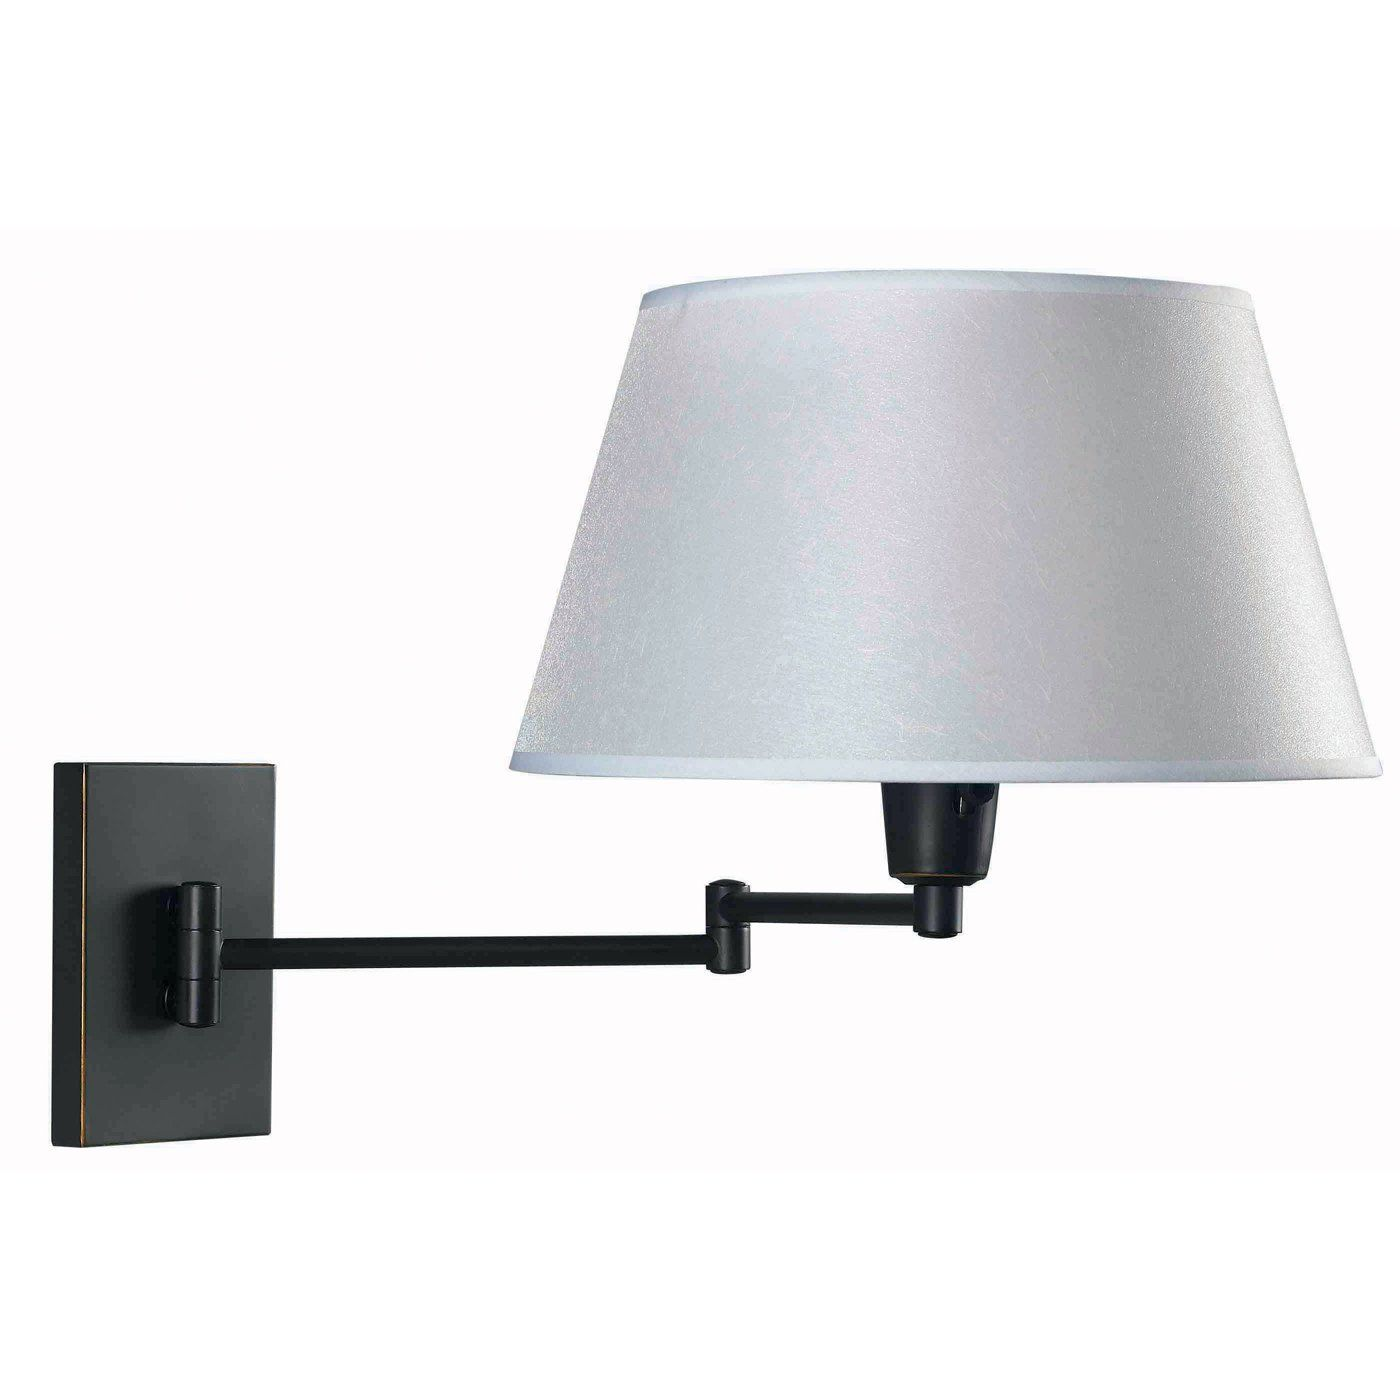 Shop Kenroy Home Simplicity Swing Arm Wall Sconce at ATG